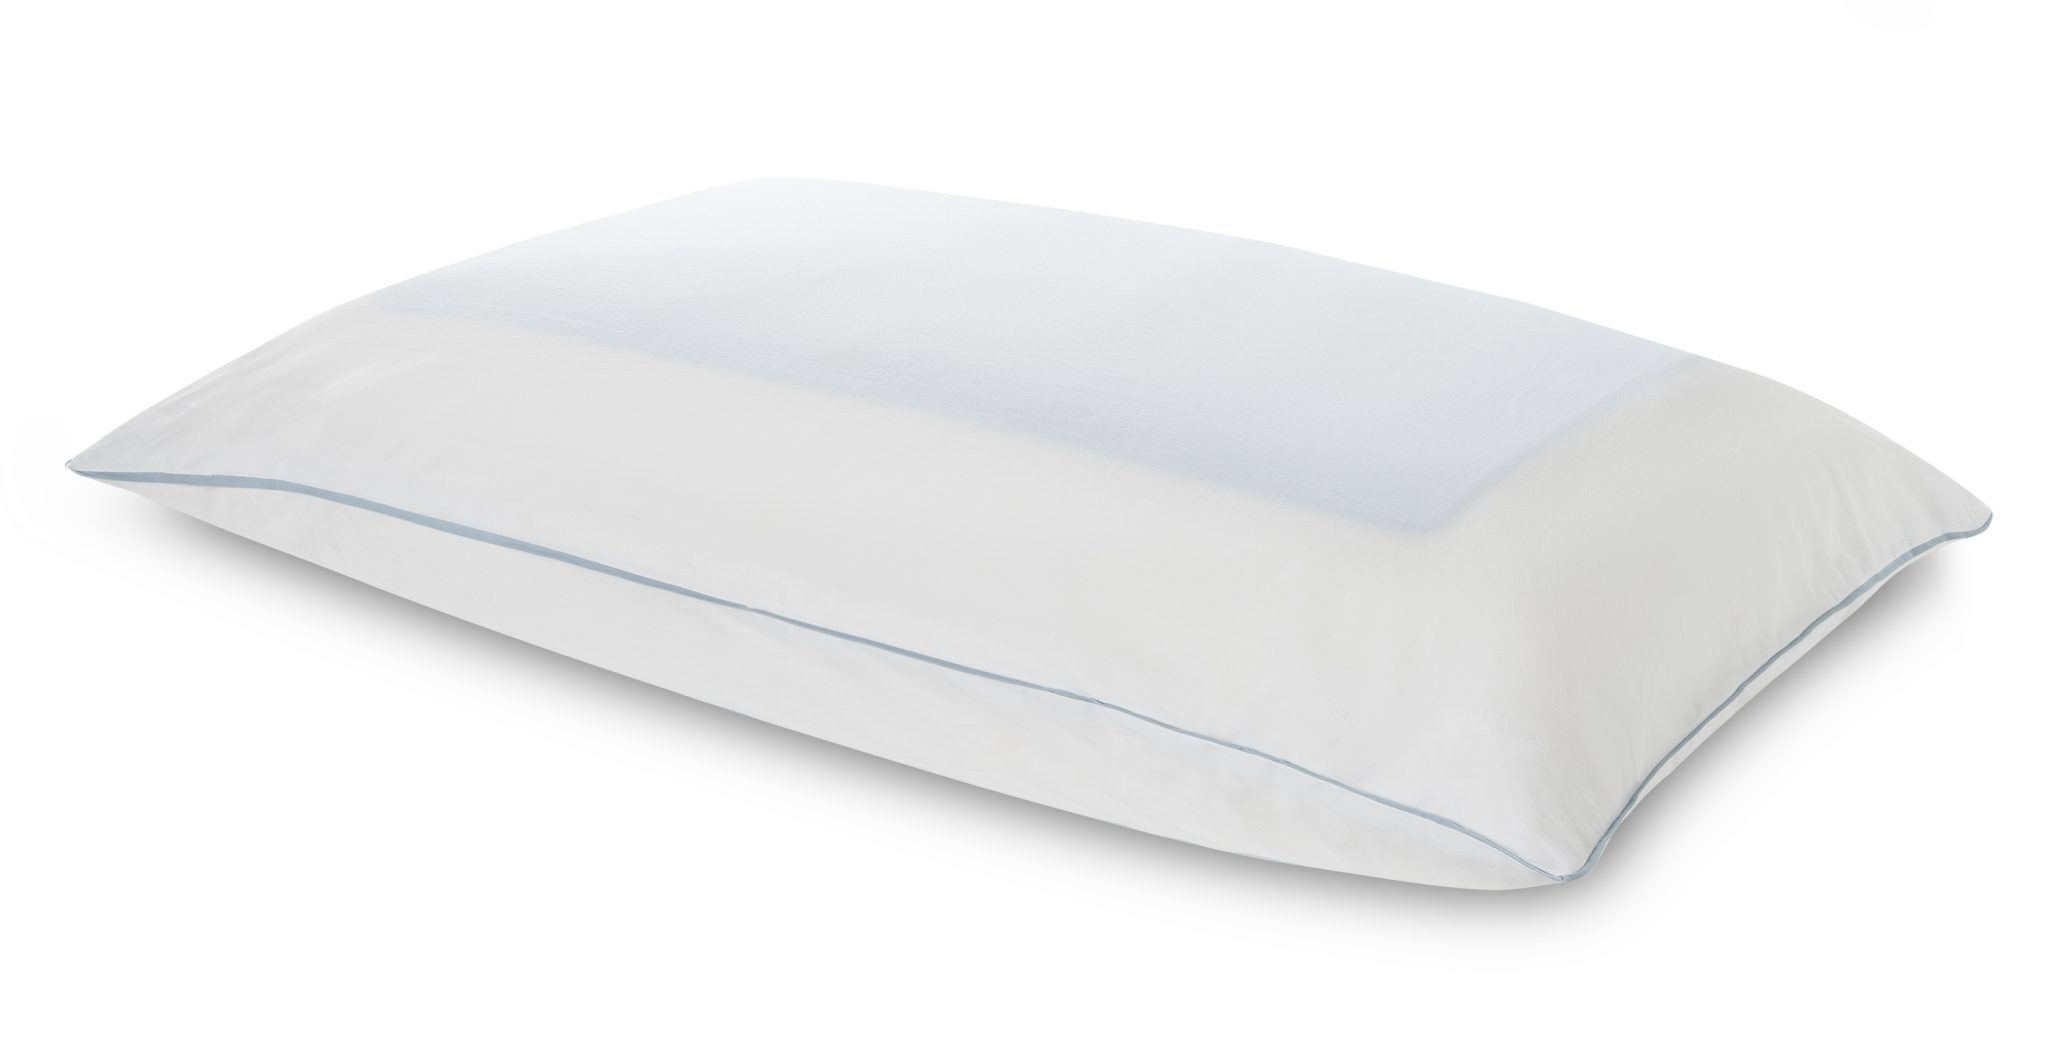 Tempur Cloud Breeze Dual Cooling Pillow Factory Mattress Bedrooms